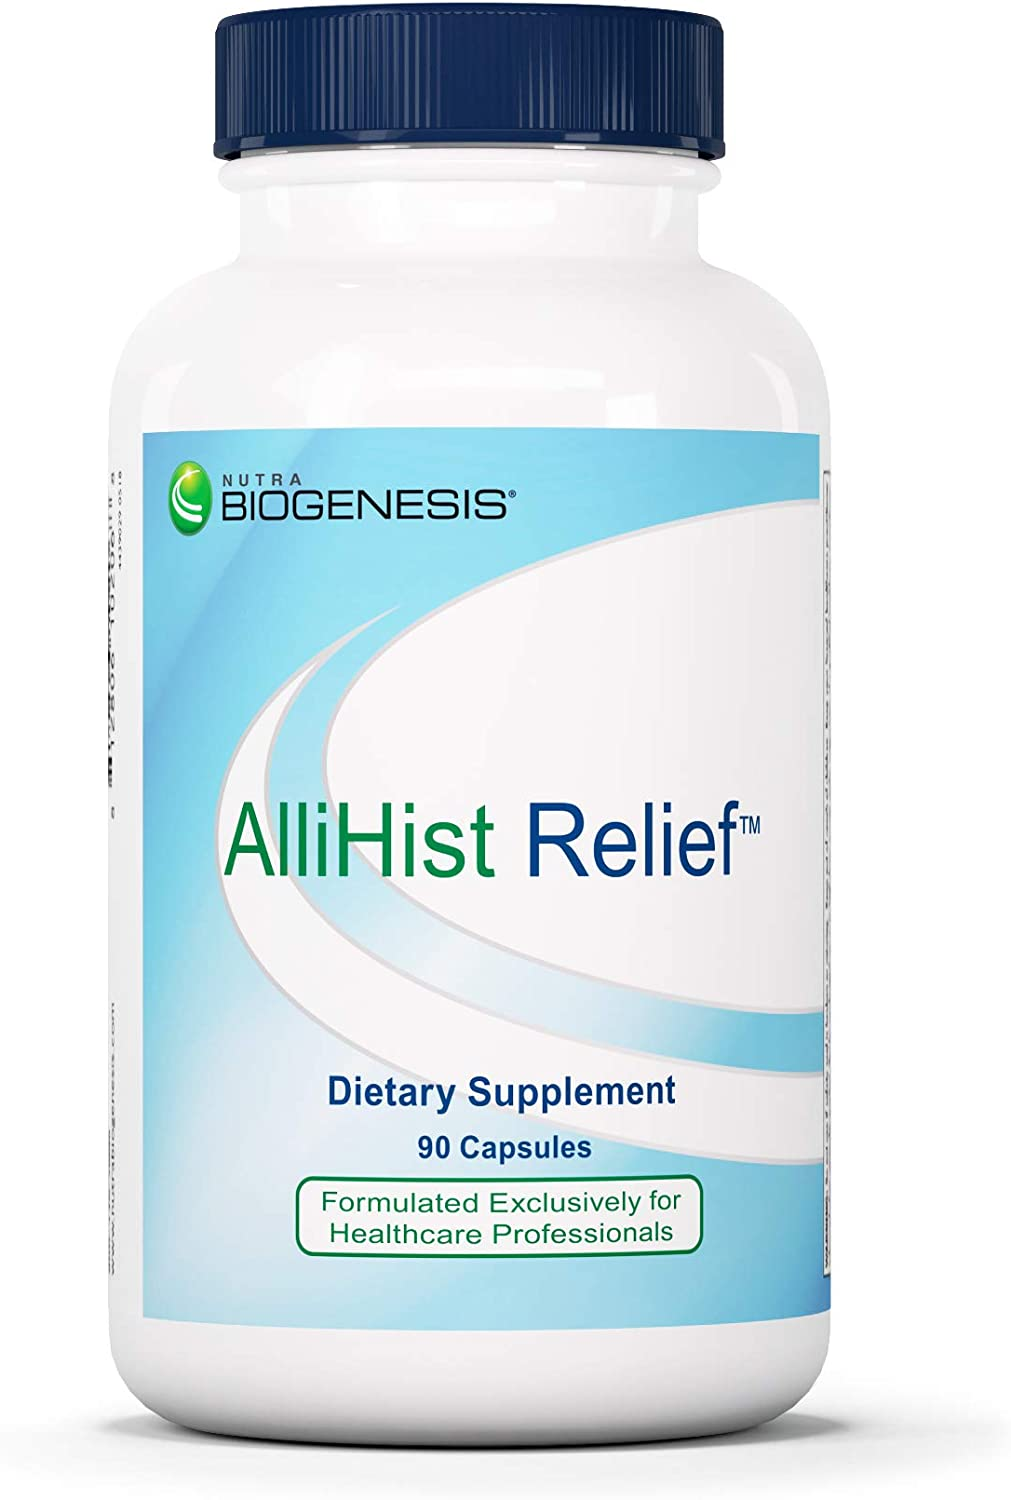 Nutra BioGenesis - AlliHist Relief - Organic Nettle, Quercetin and Feverfew for Nasal, Sinus and Lung Support - 90 Capsules